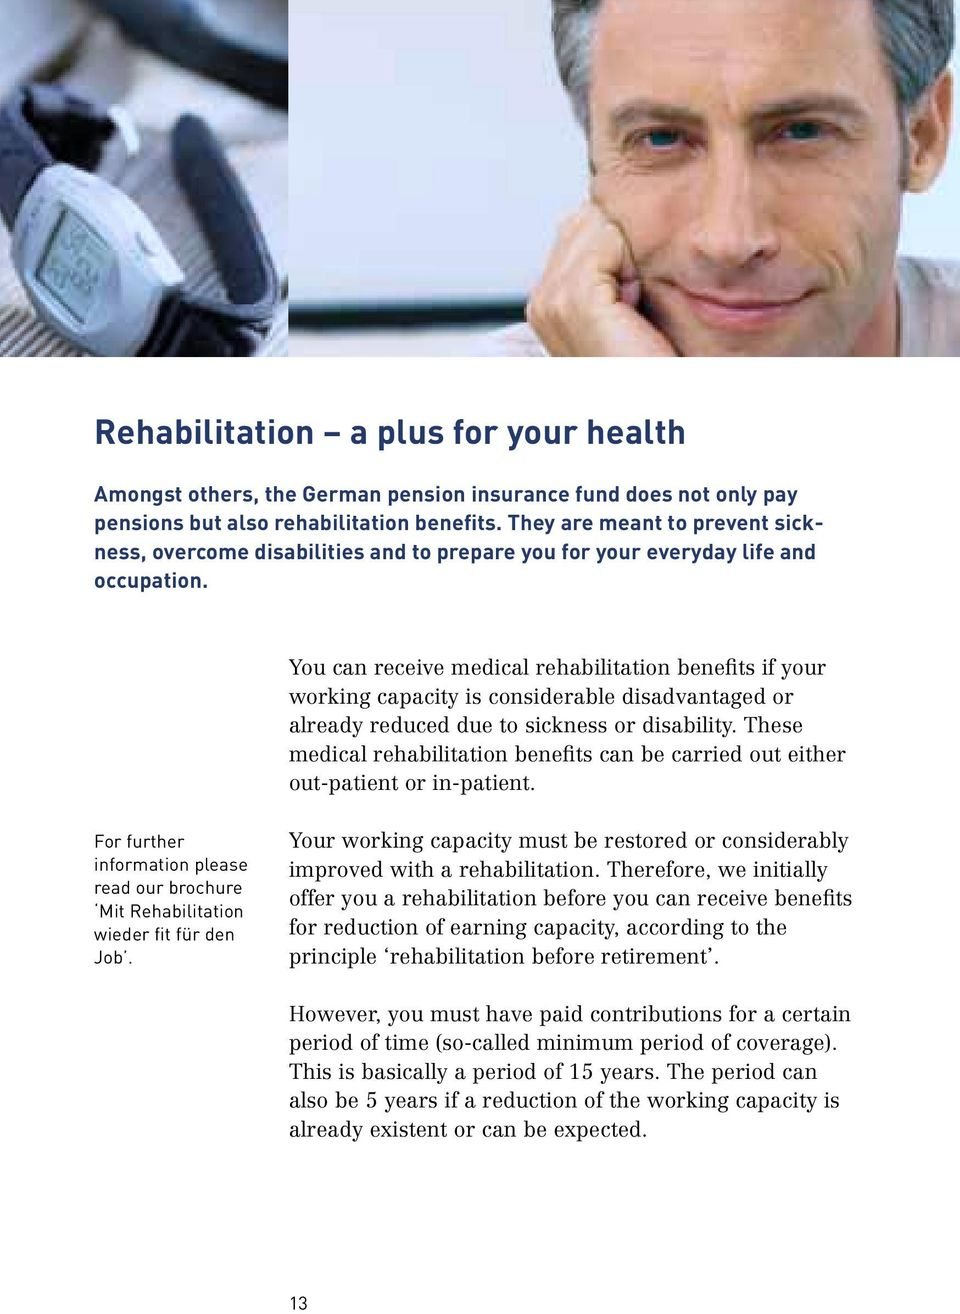 You can receive medical rehabilitation benefits if your working capacity is considerable disadvantaged or already reduced due to sickness or disability.